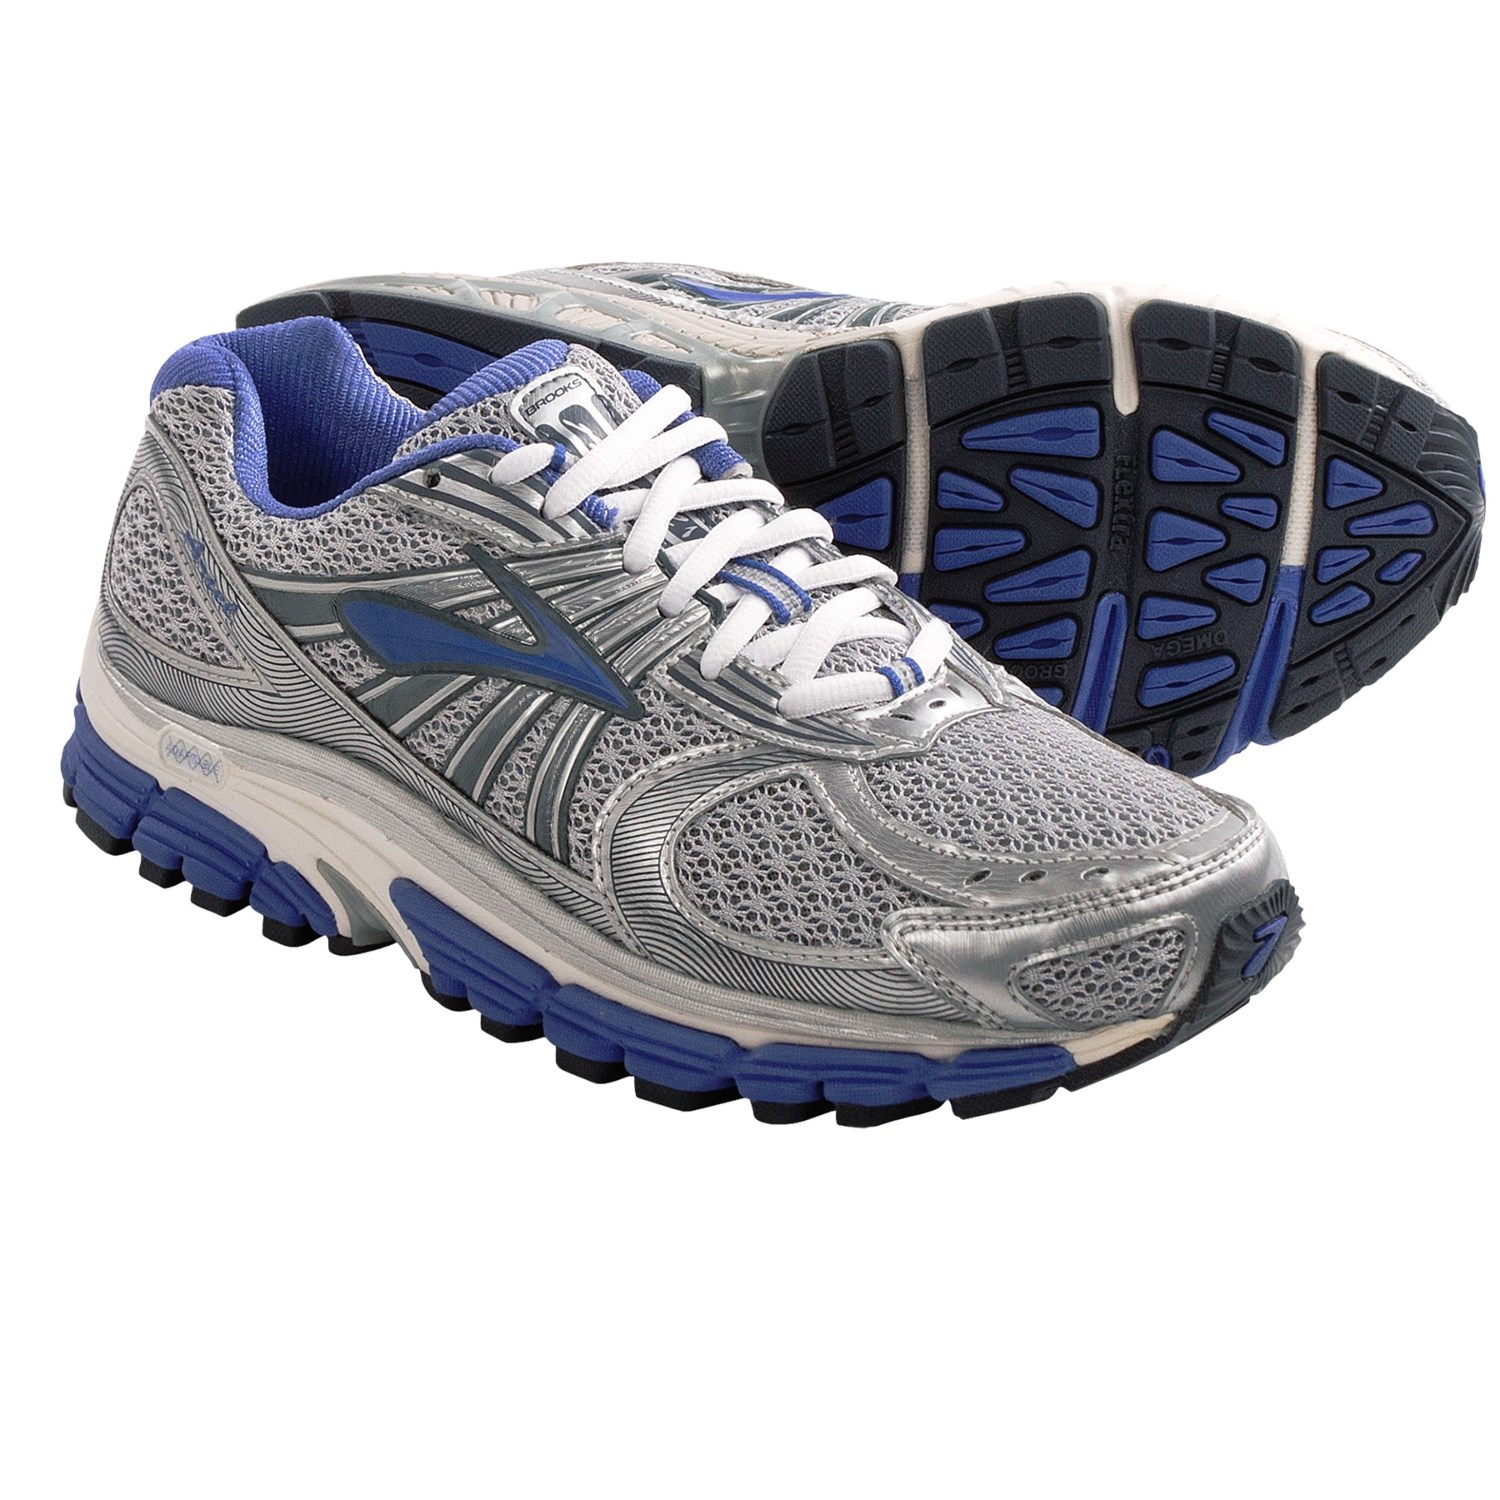 Running Shoes Stability Motion Control Cushioning 98